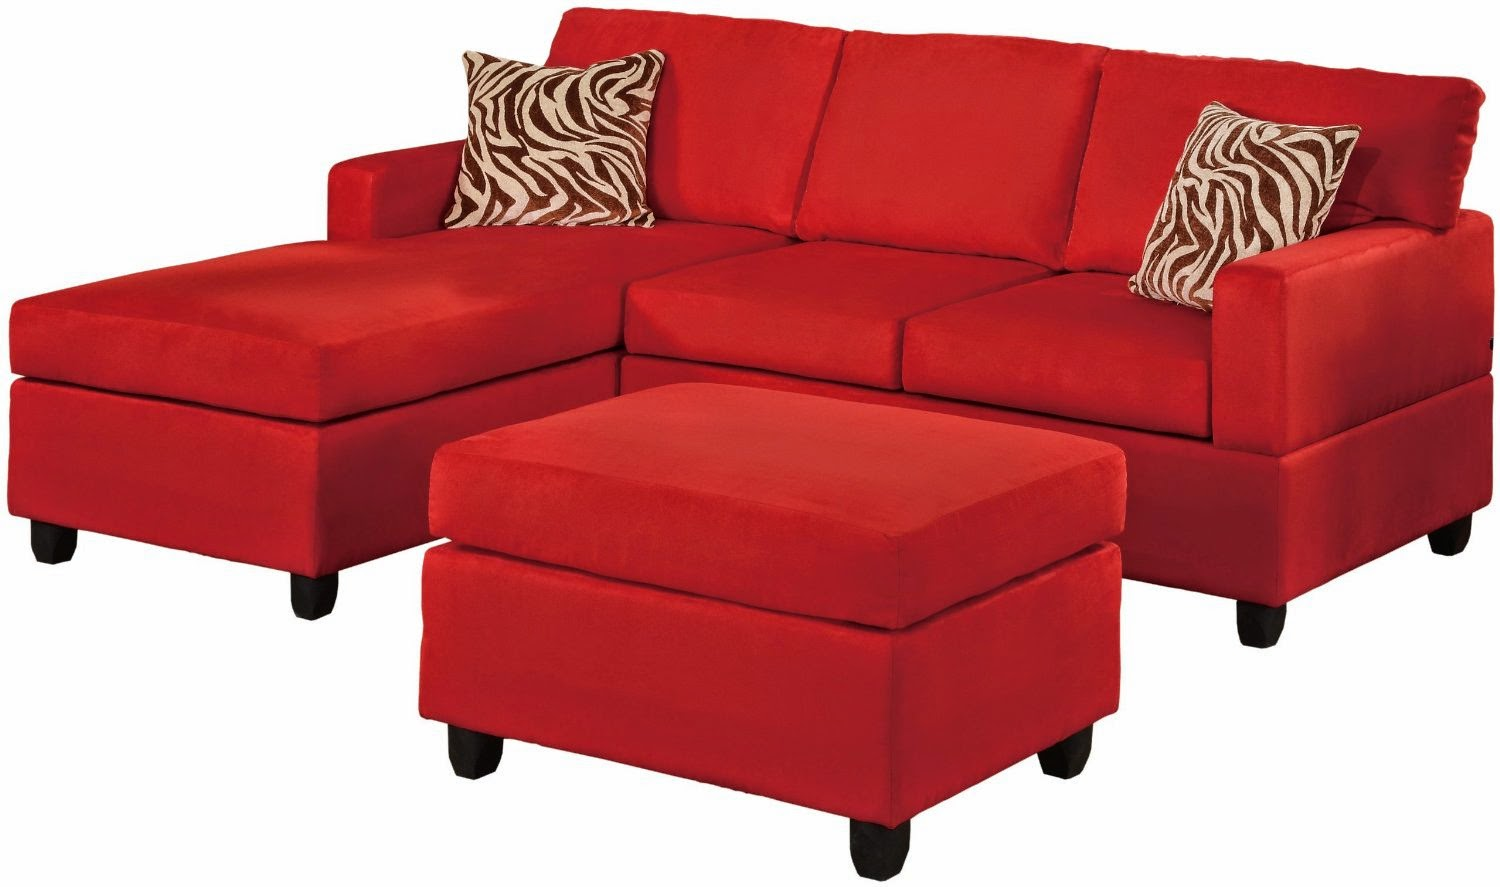 Red couch for 2 piece red sectional sofa